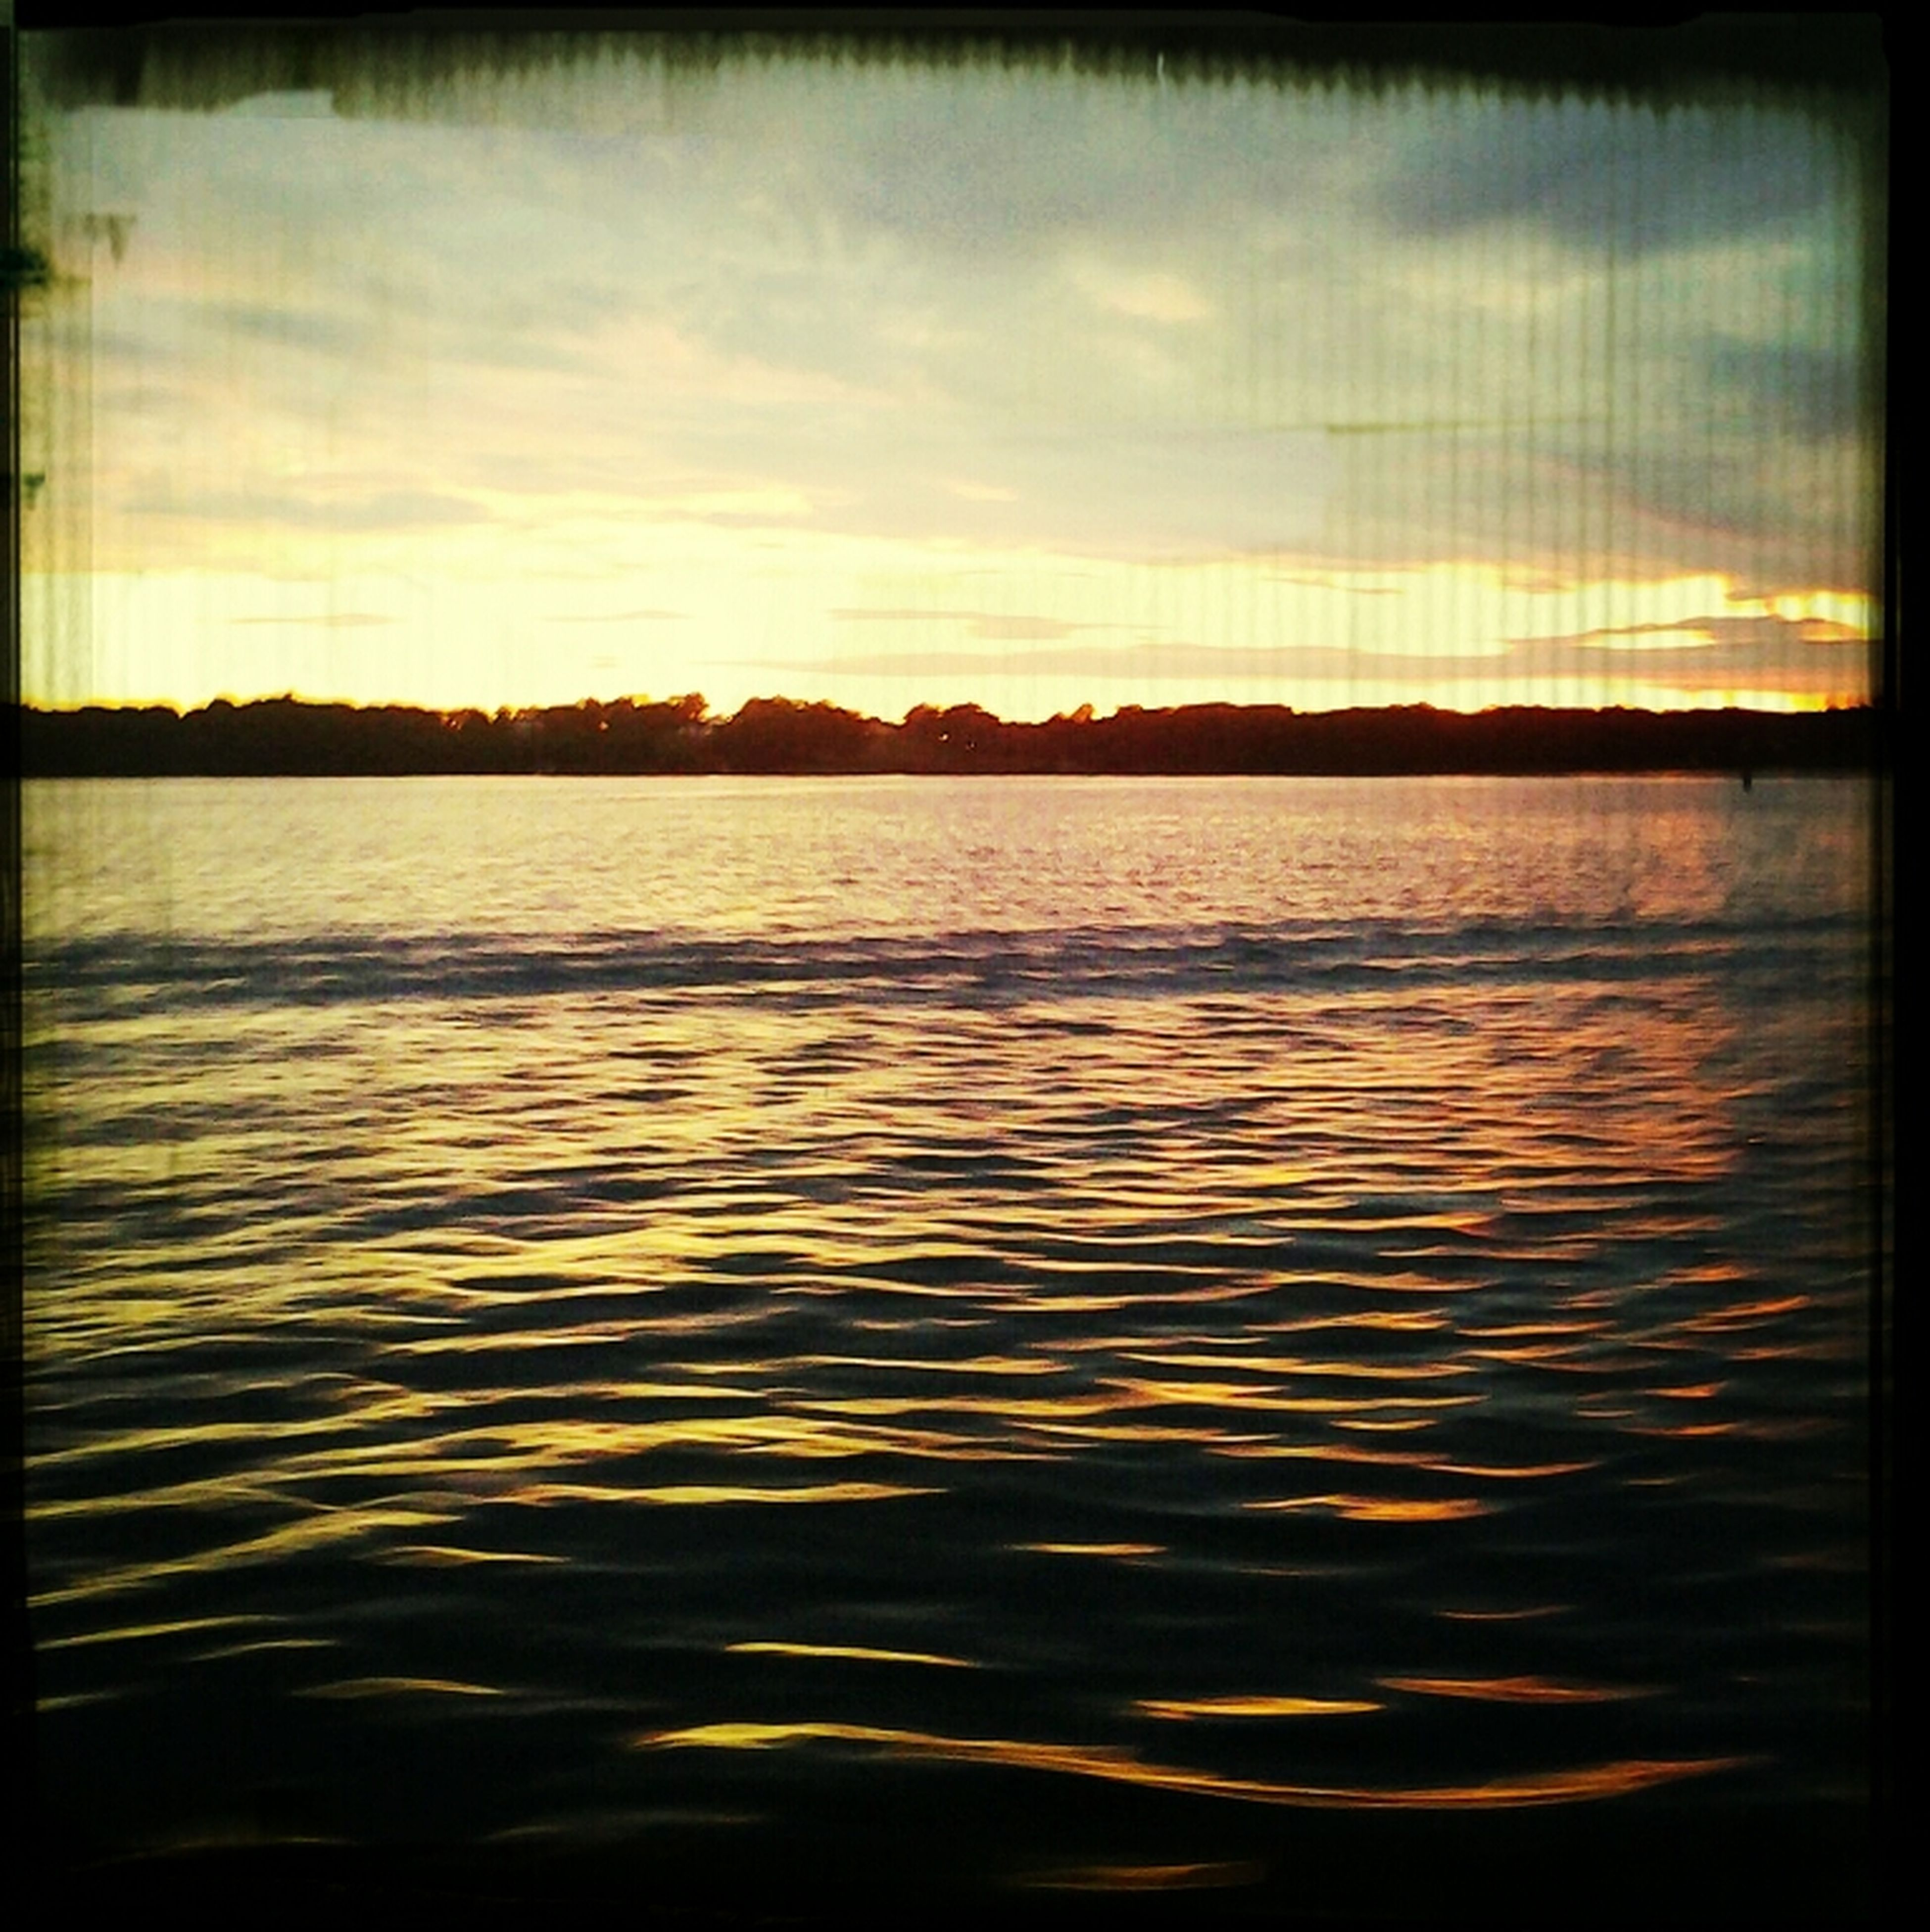 Prudence Island. :) I'm gonna be uploading more pics from here soon!